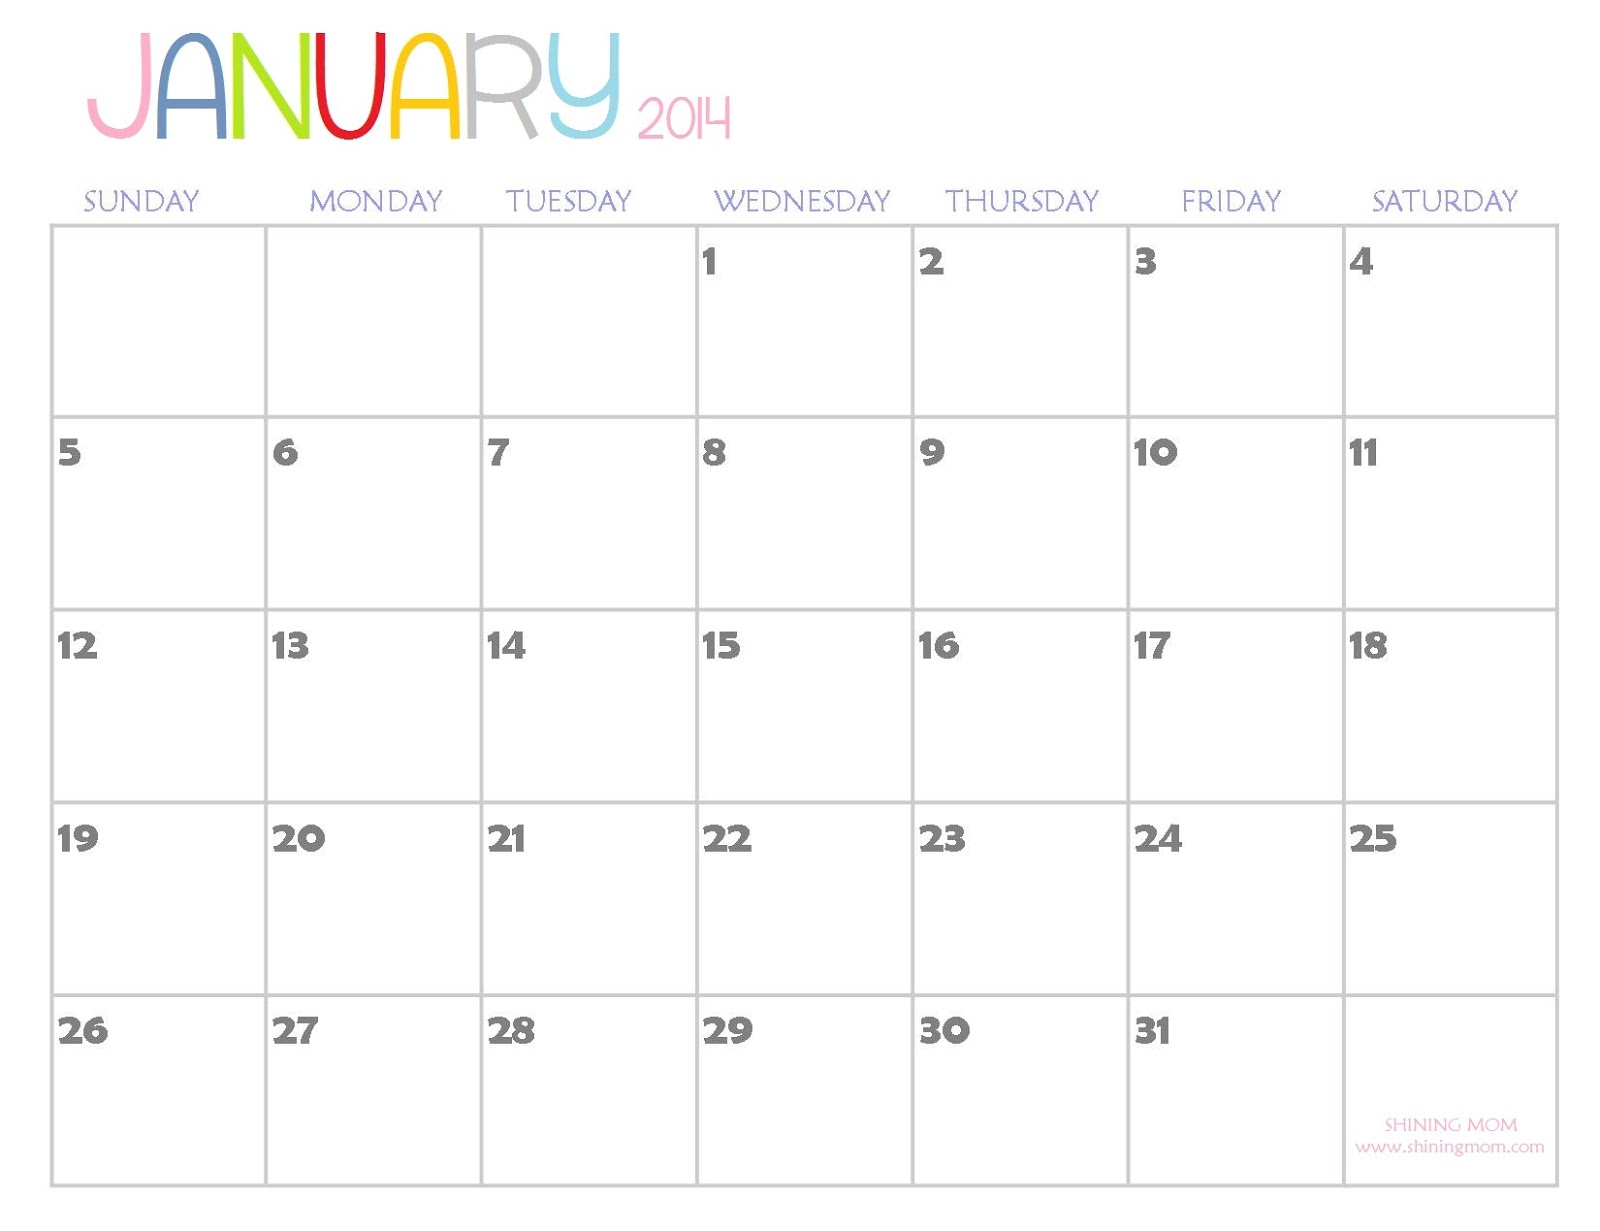 The Free Printable Calendar By Shining Mom Is Here